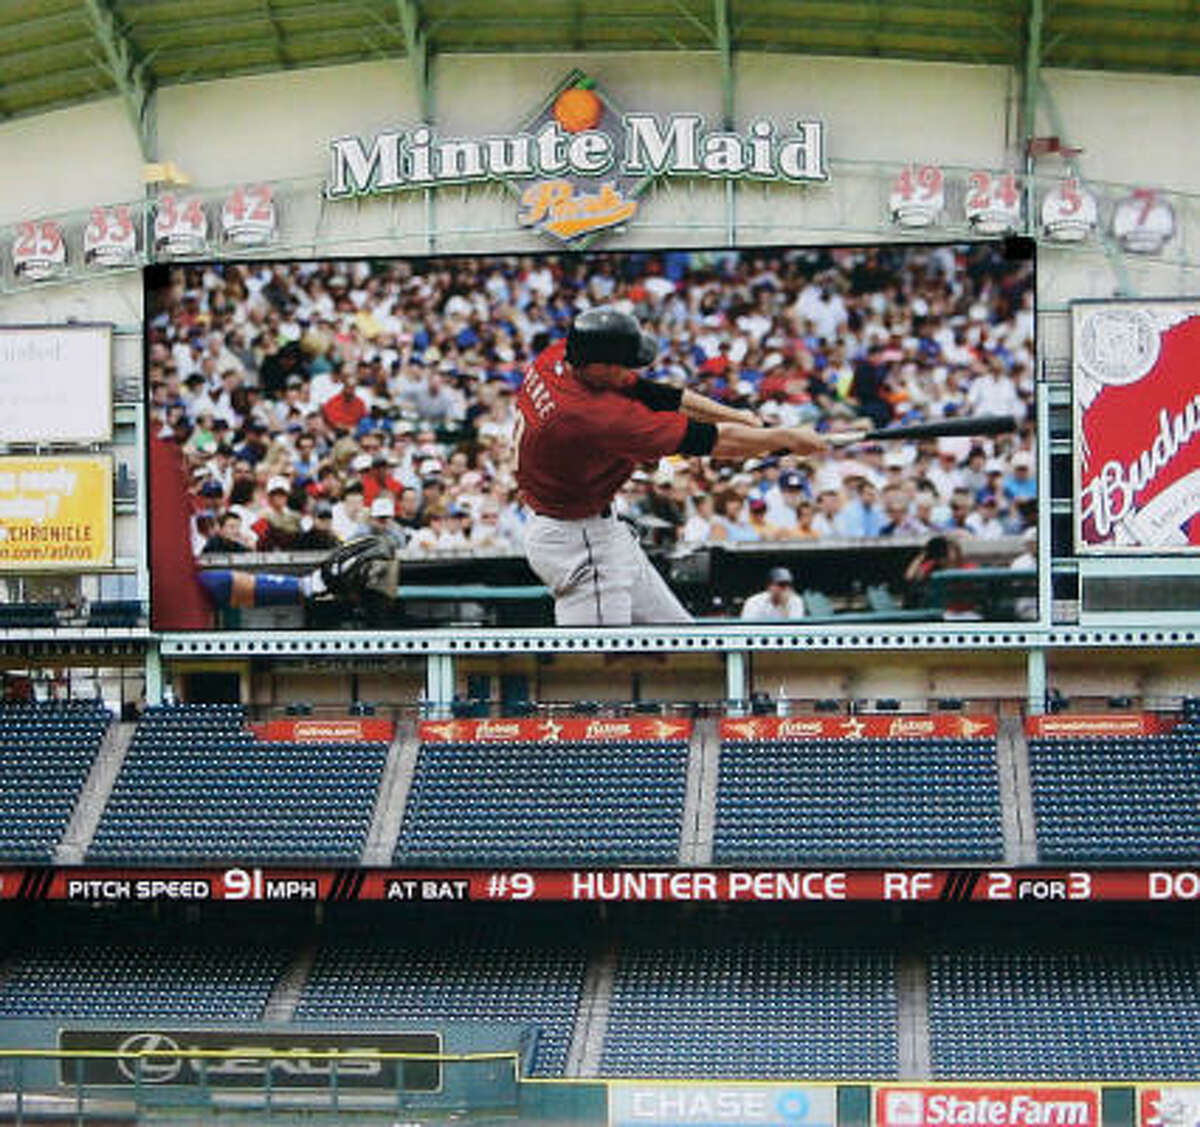 An artist's rendering depicts the proposed high-definition board at Minute Maid Park. The screen would be the second largest in Major League Baseball.